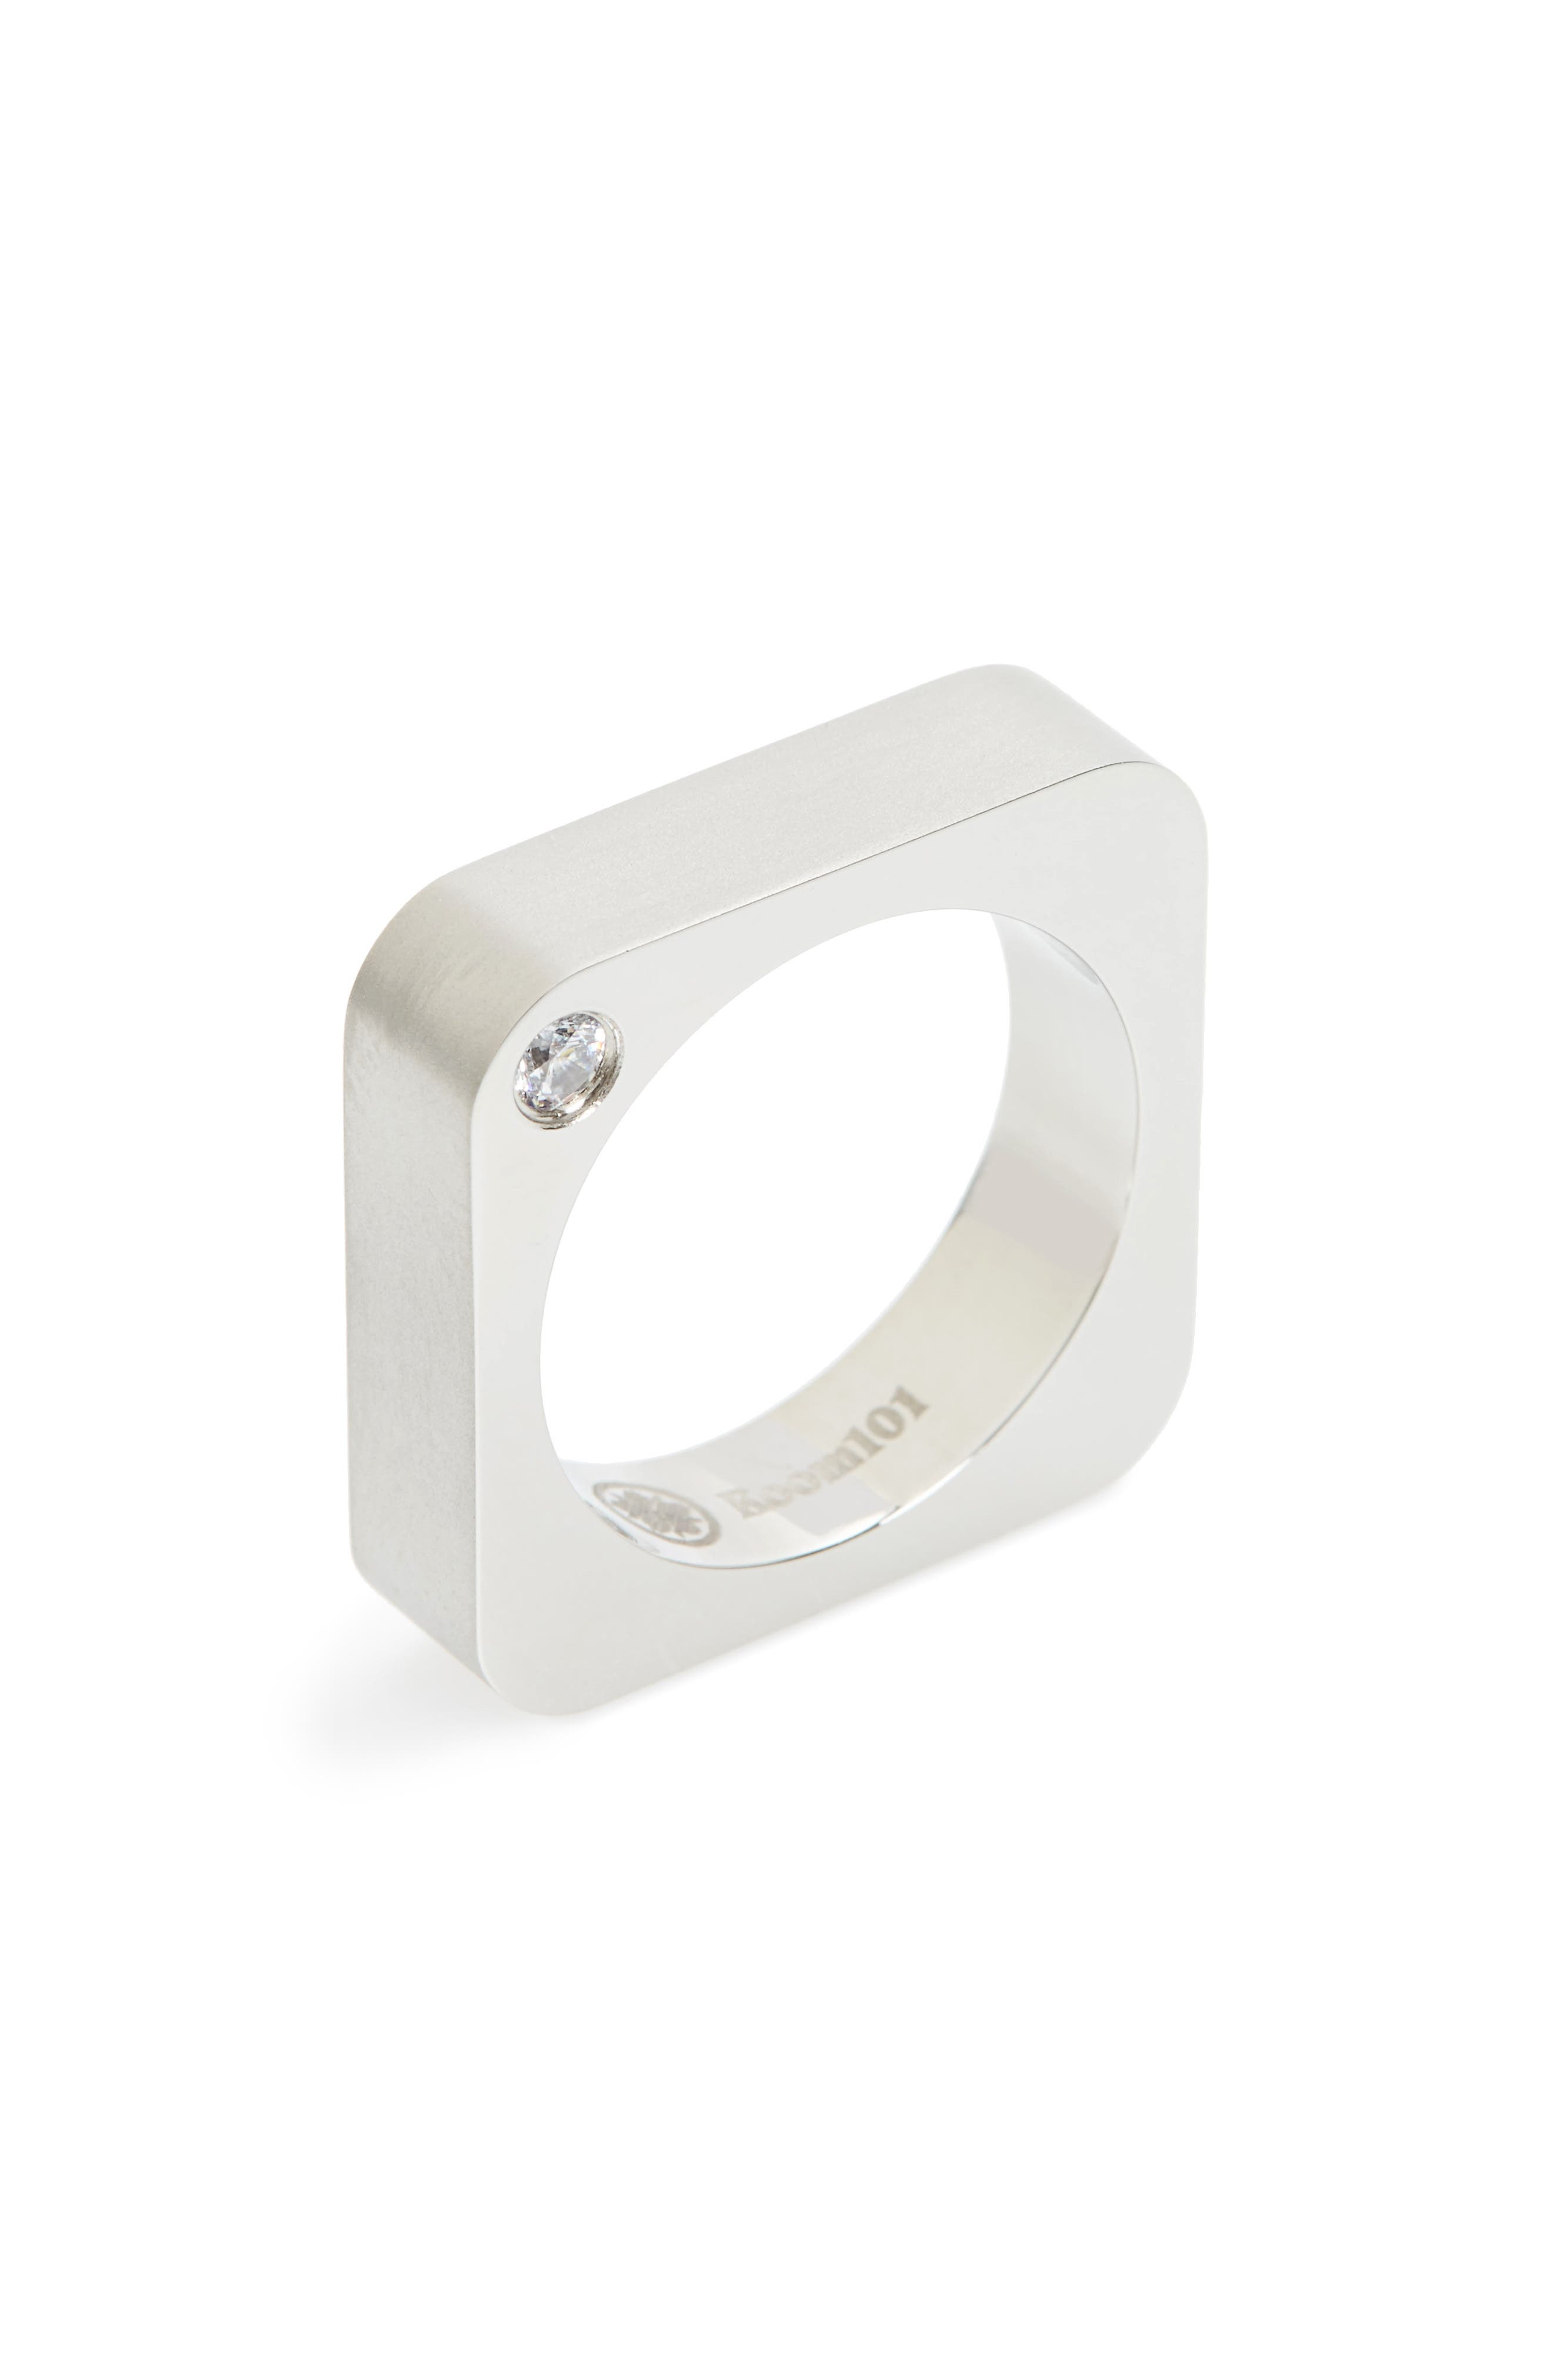 Room 101 Square Ring